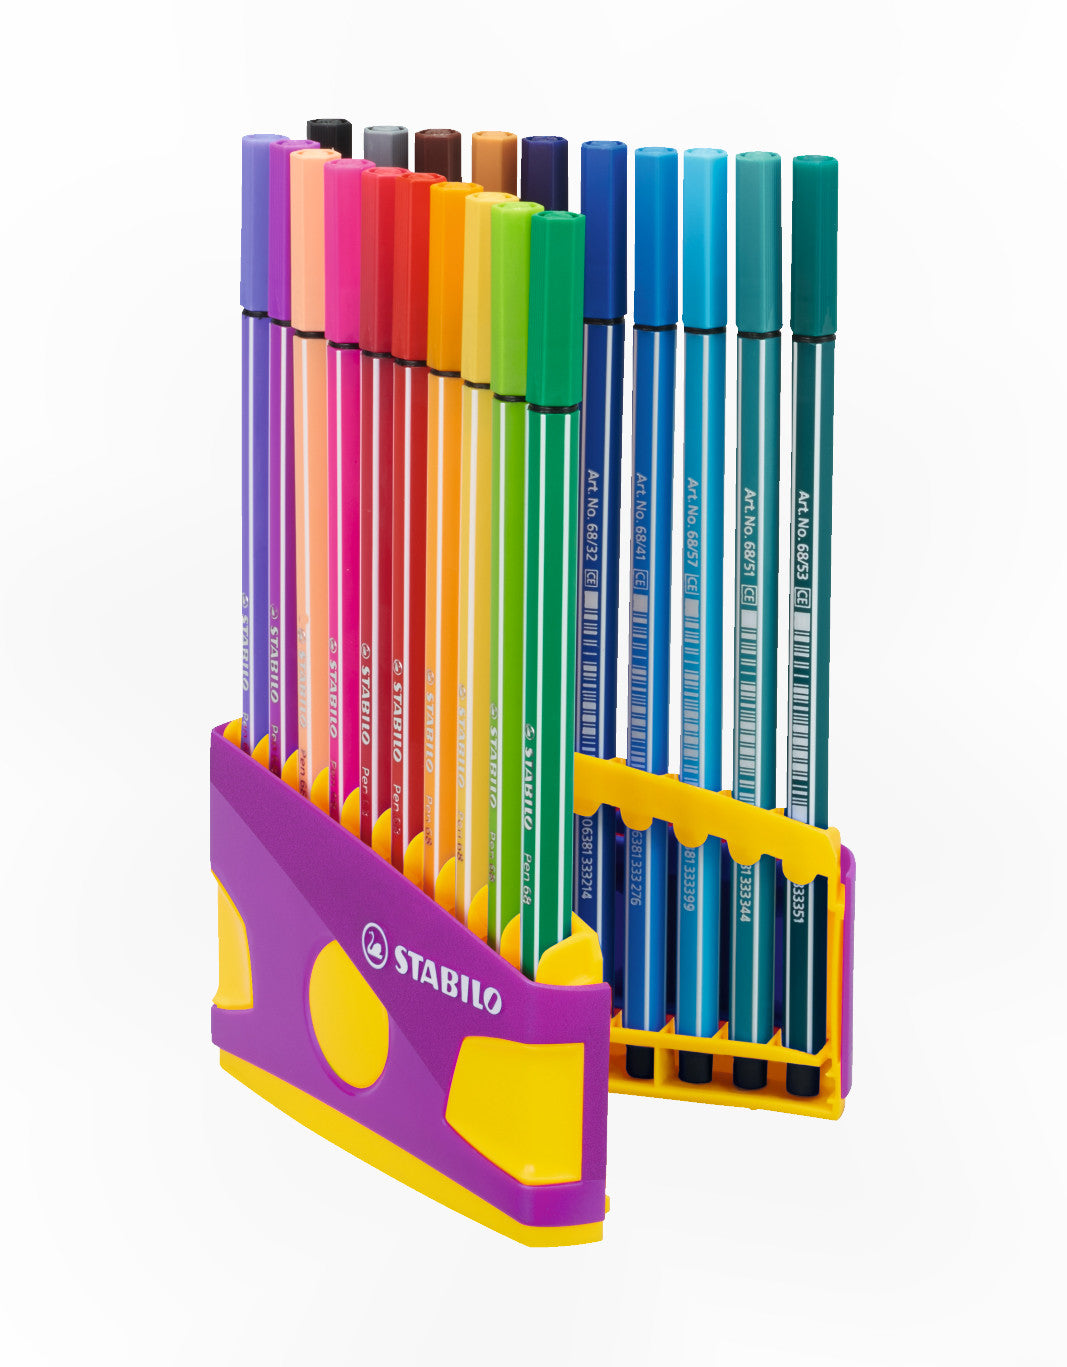 Coloriage Anti Stress Stabilo.Stabilo Quality Colouring Products Stabilo Shoppe Most Colourful